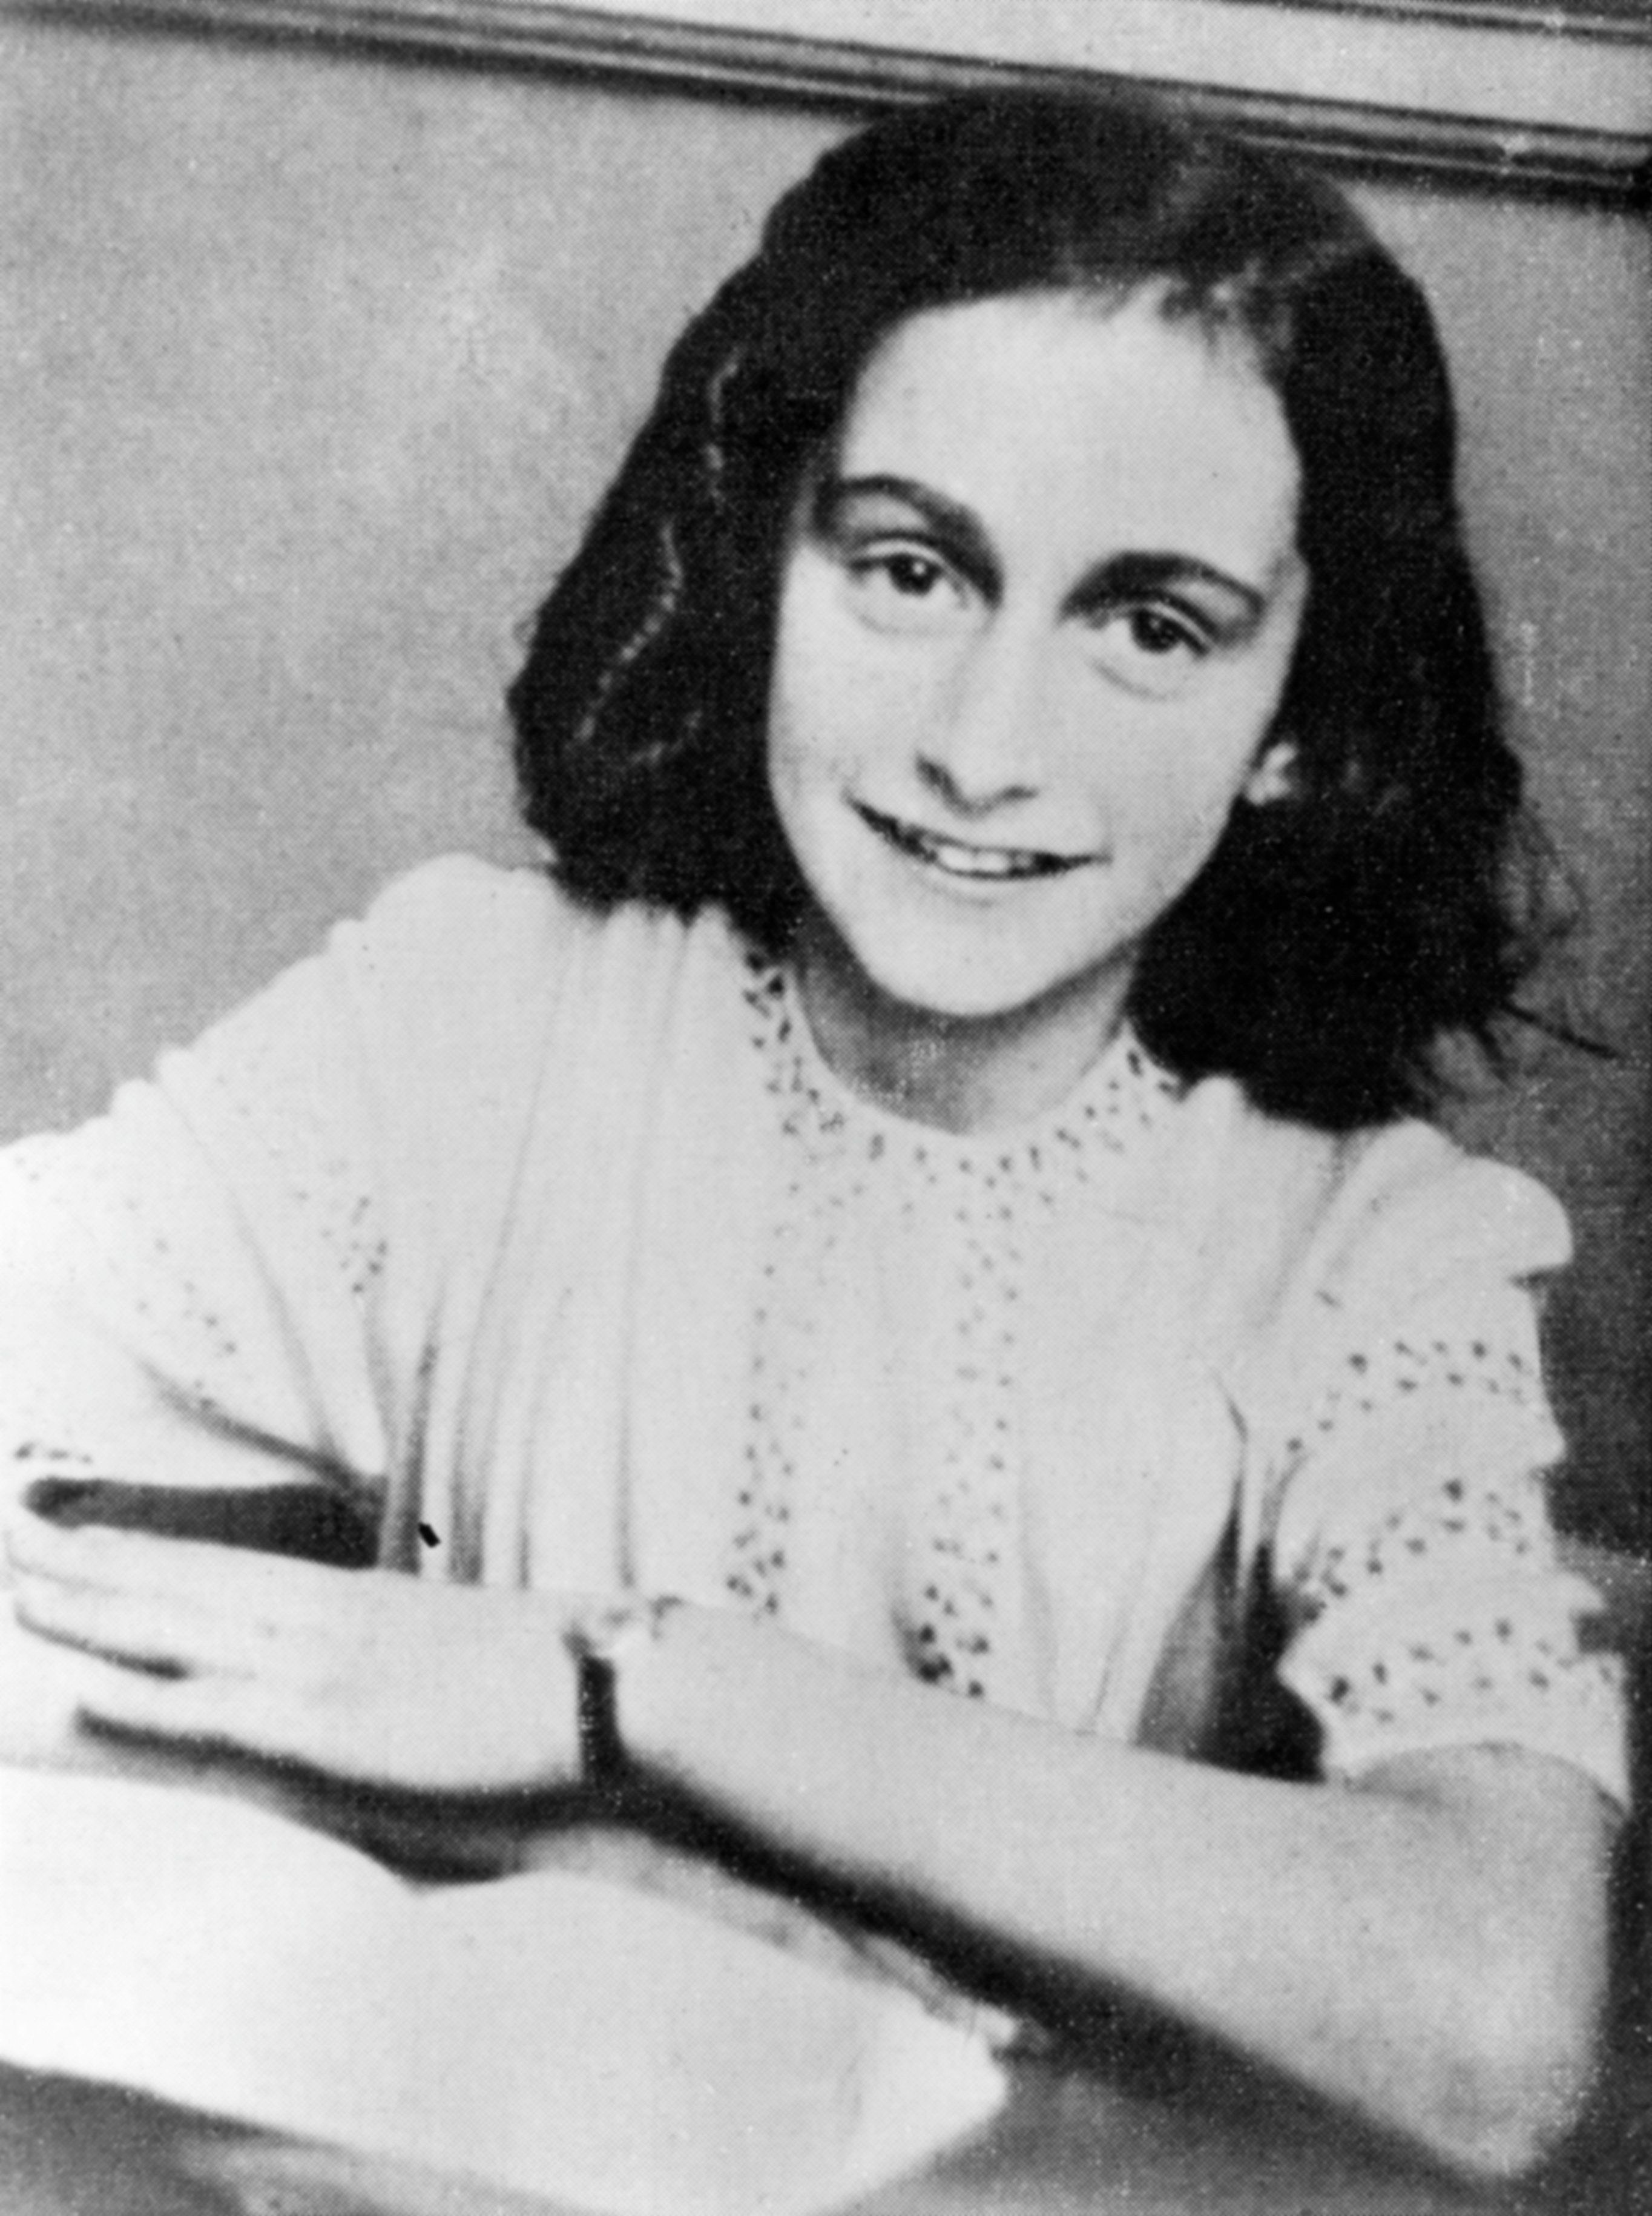 Anne frank talking about sexuality